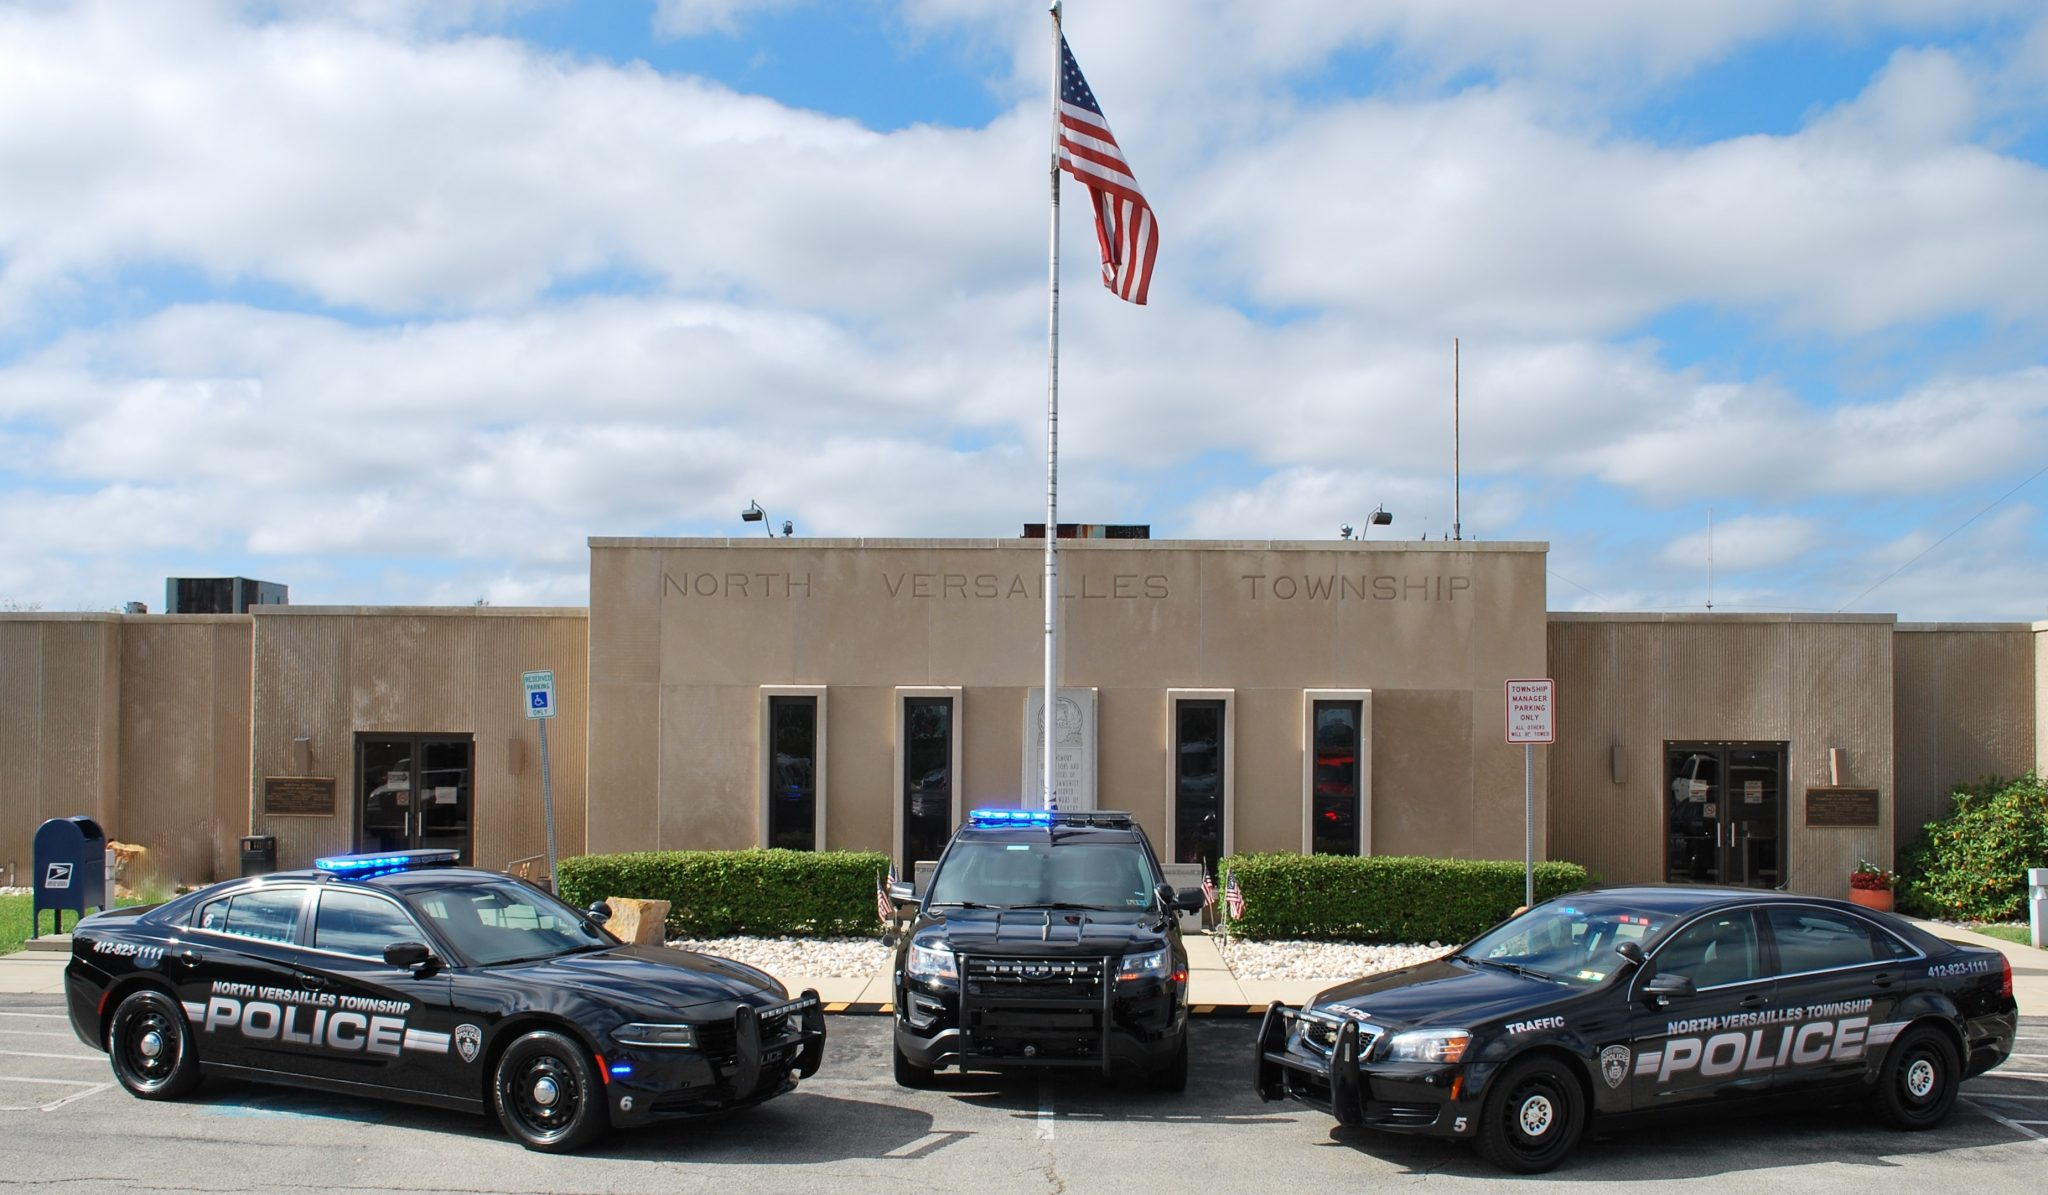 North Versailles Police Department